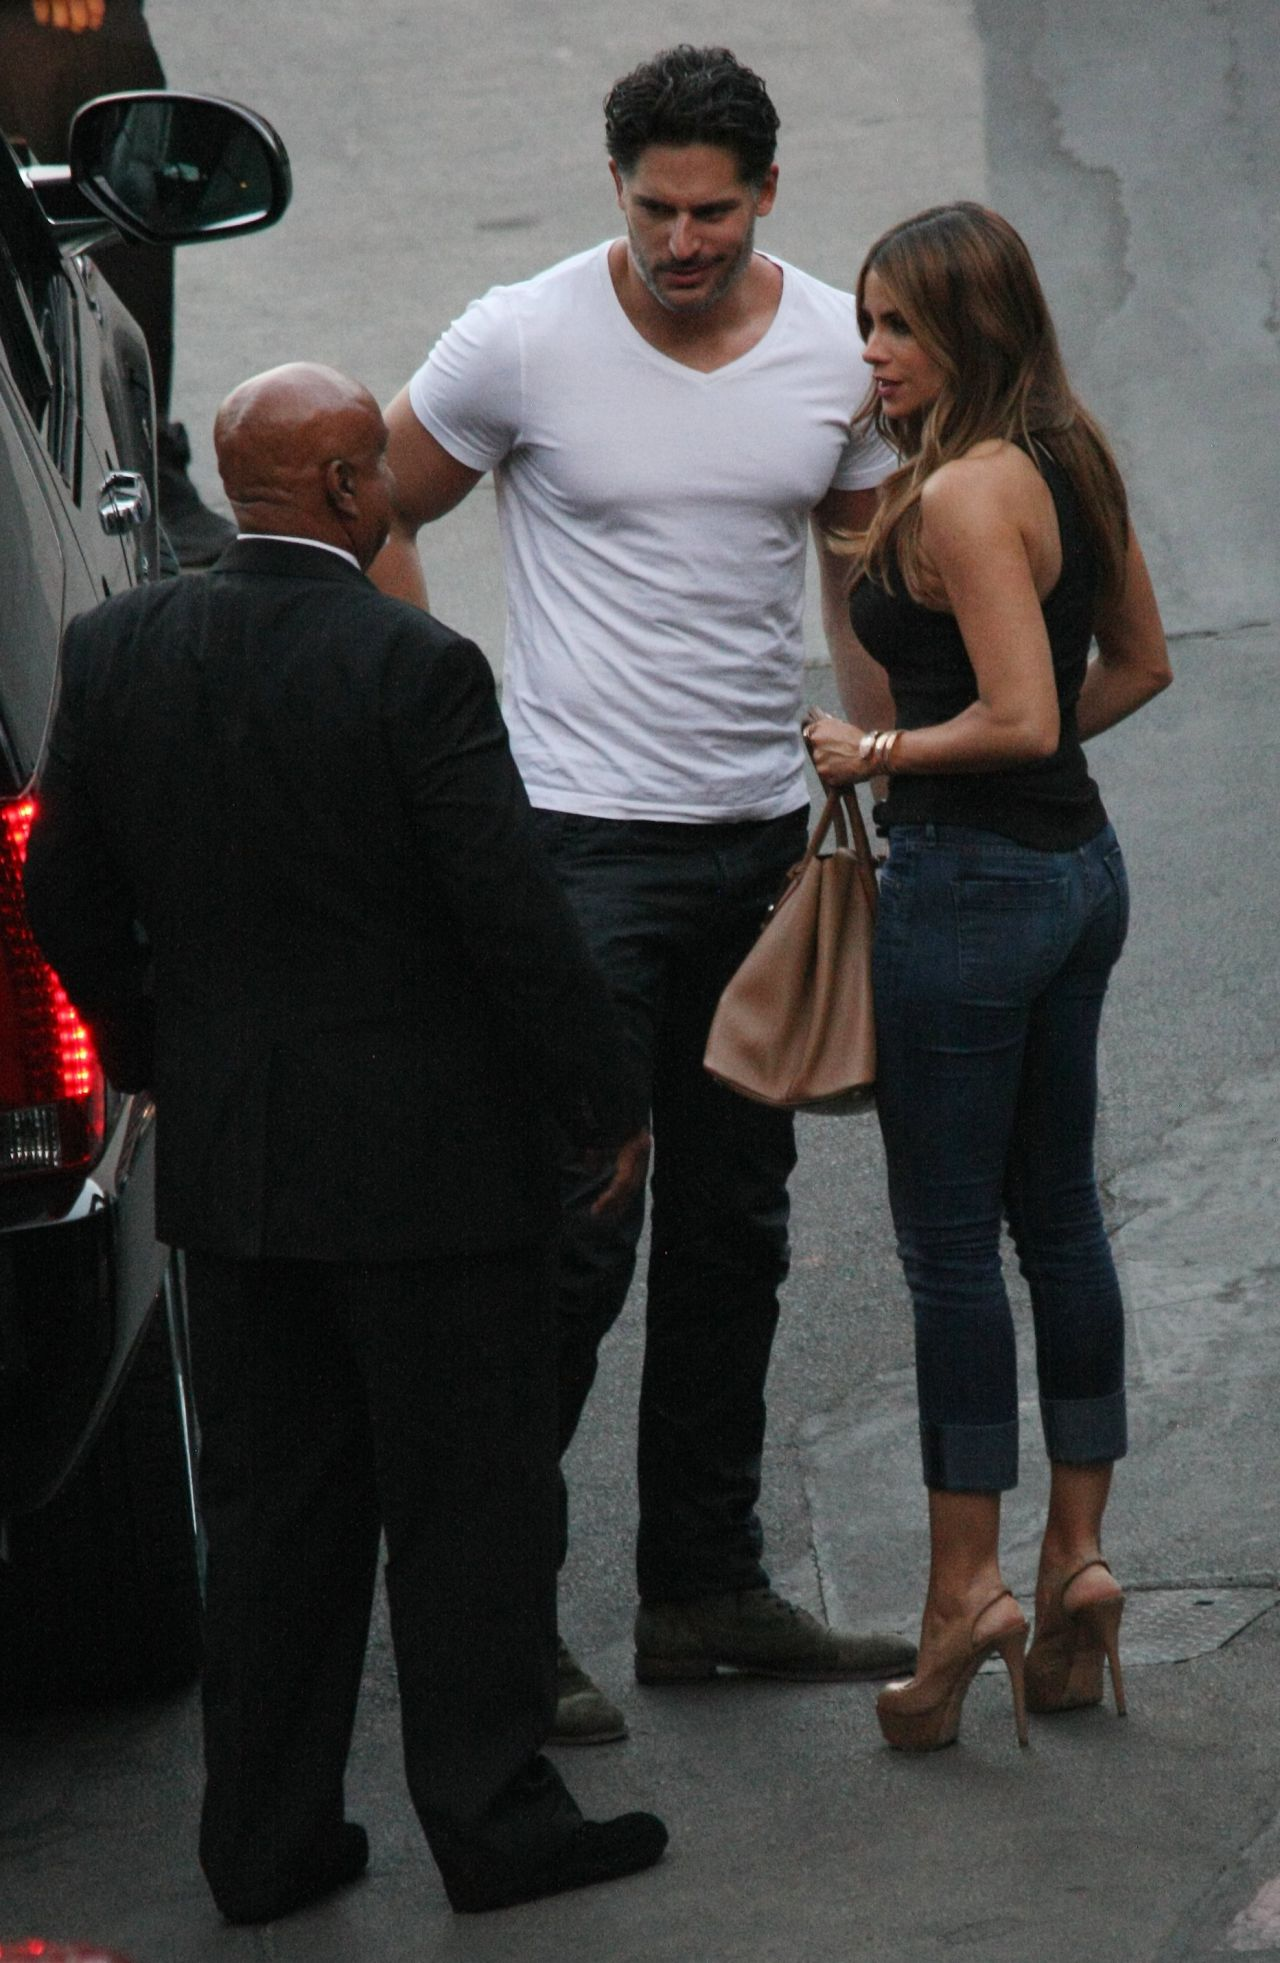 Sofia Vergara and Joe Manganiello Arriving at the Hollywood Bowl in Los Angeles - August 2014